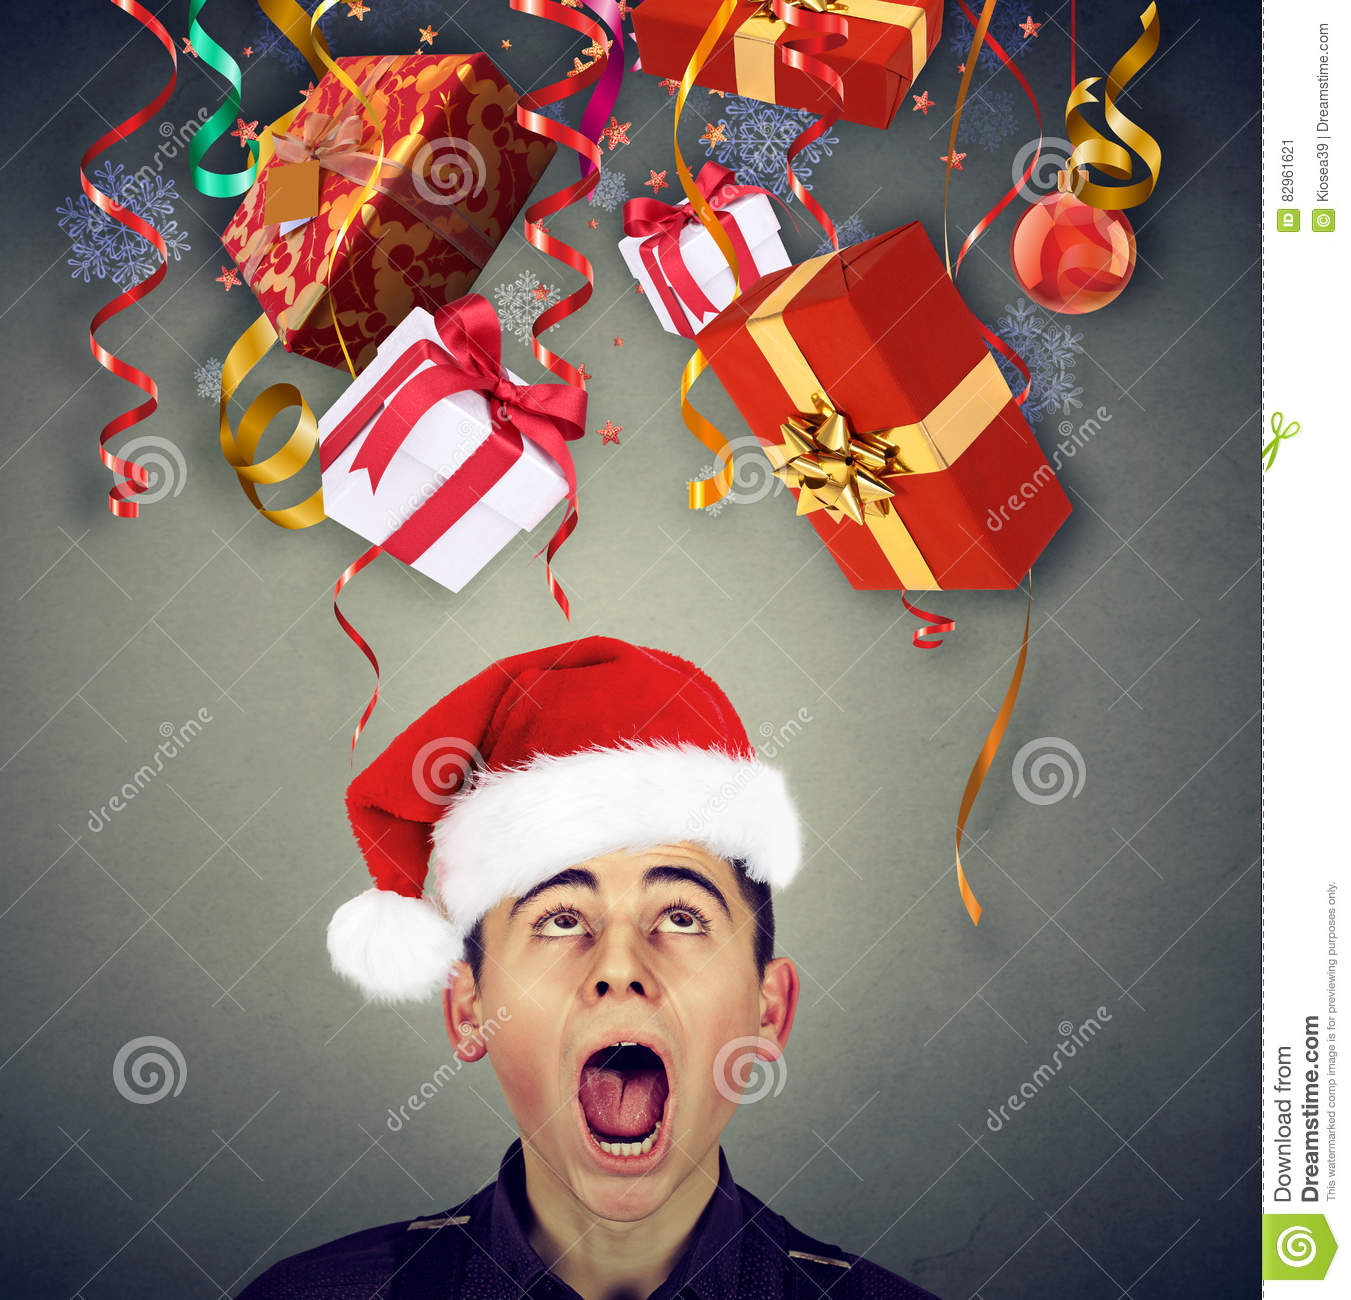 Surprised Man In Santa Claus Hat Looking Up At Christmas Gifts Stock ...